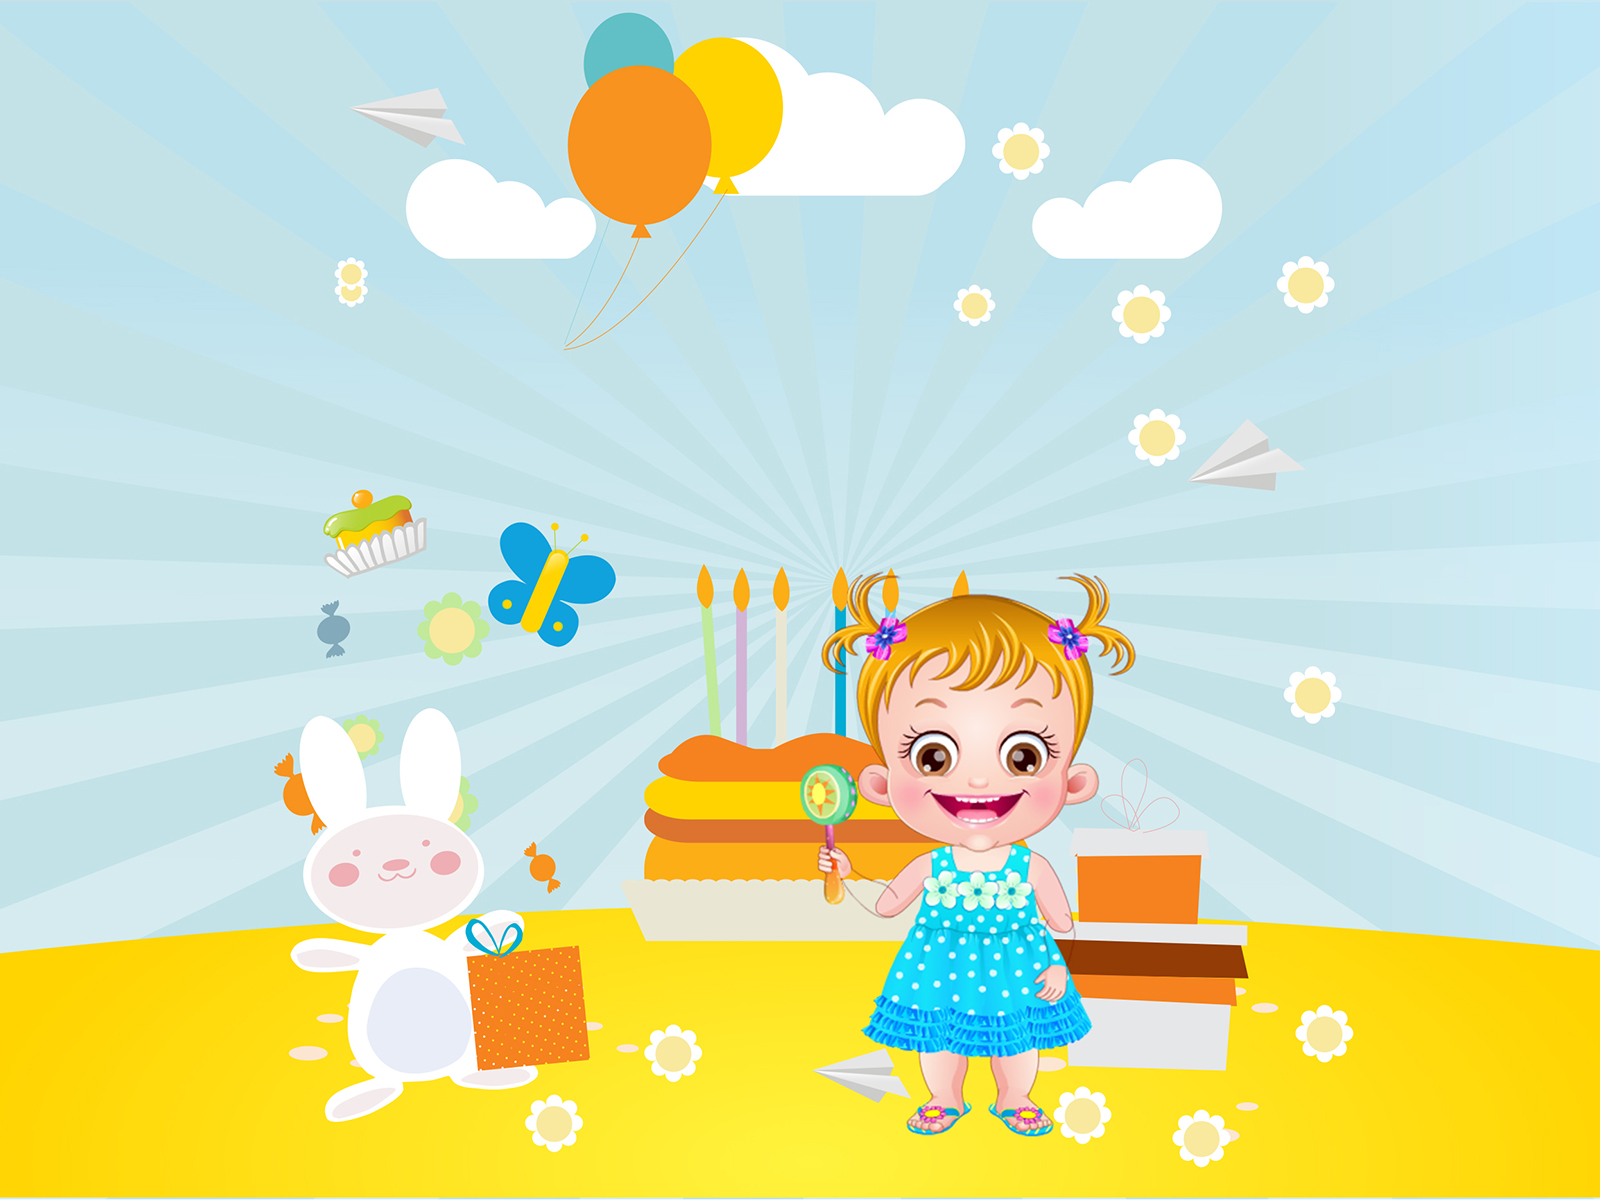 tv game show powerpoint templates - baby hazel birthday backgrounds blue games holiday